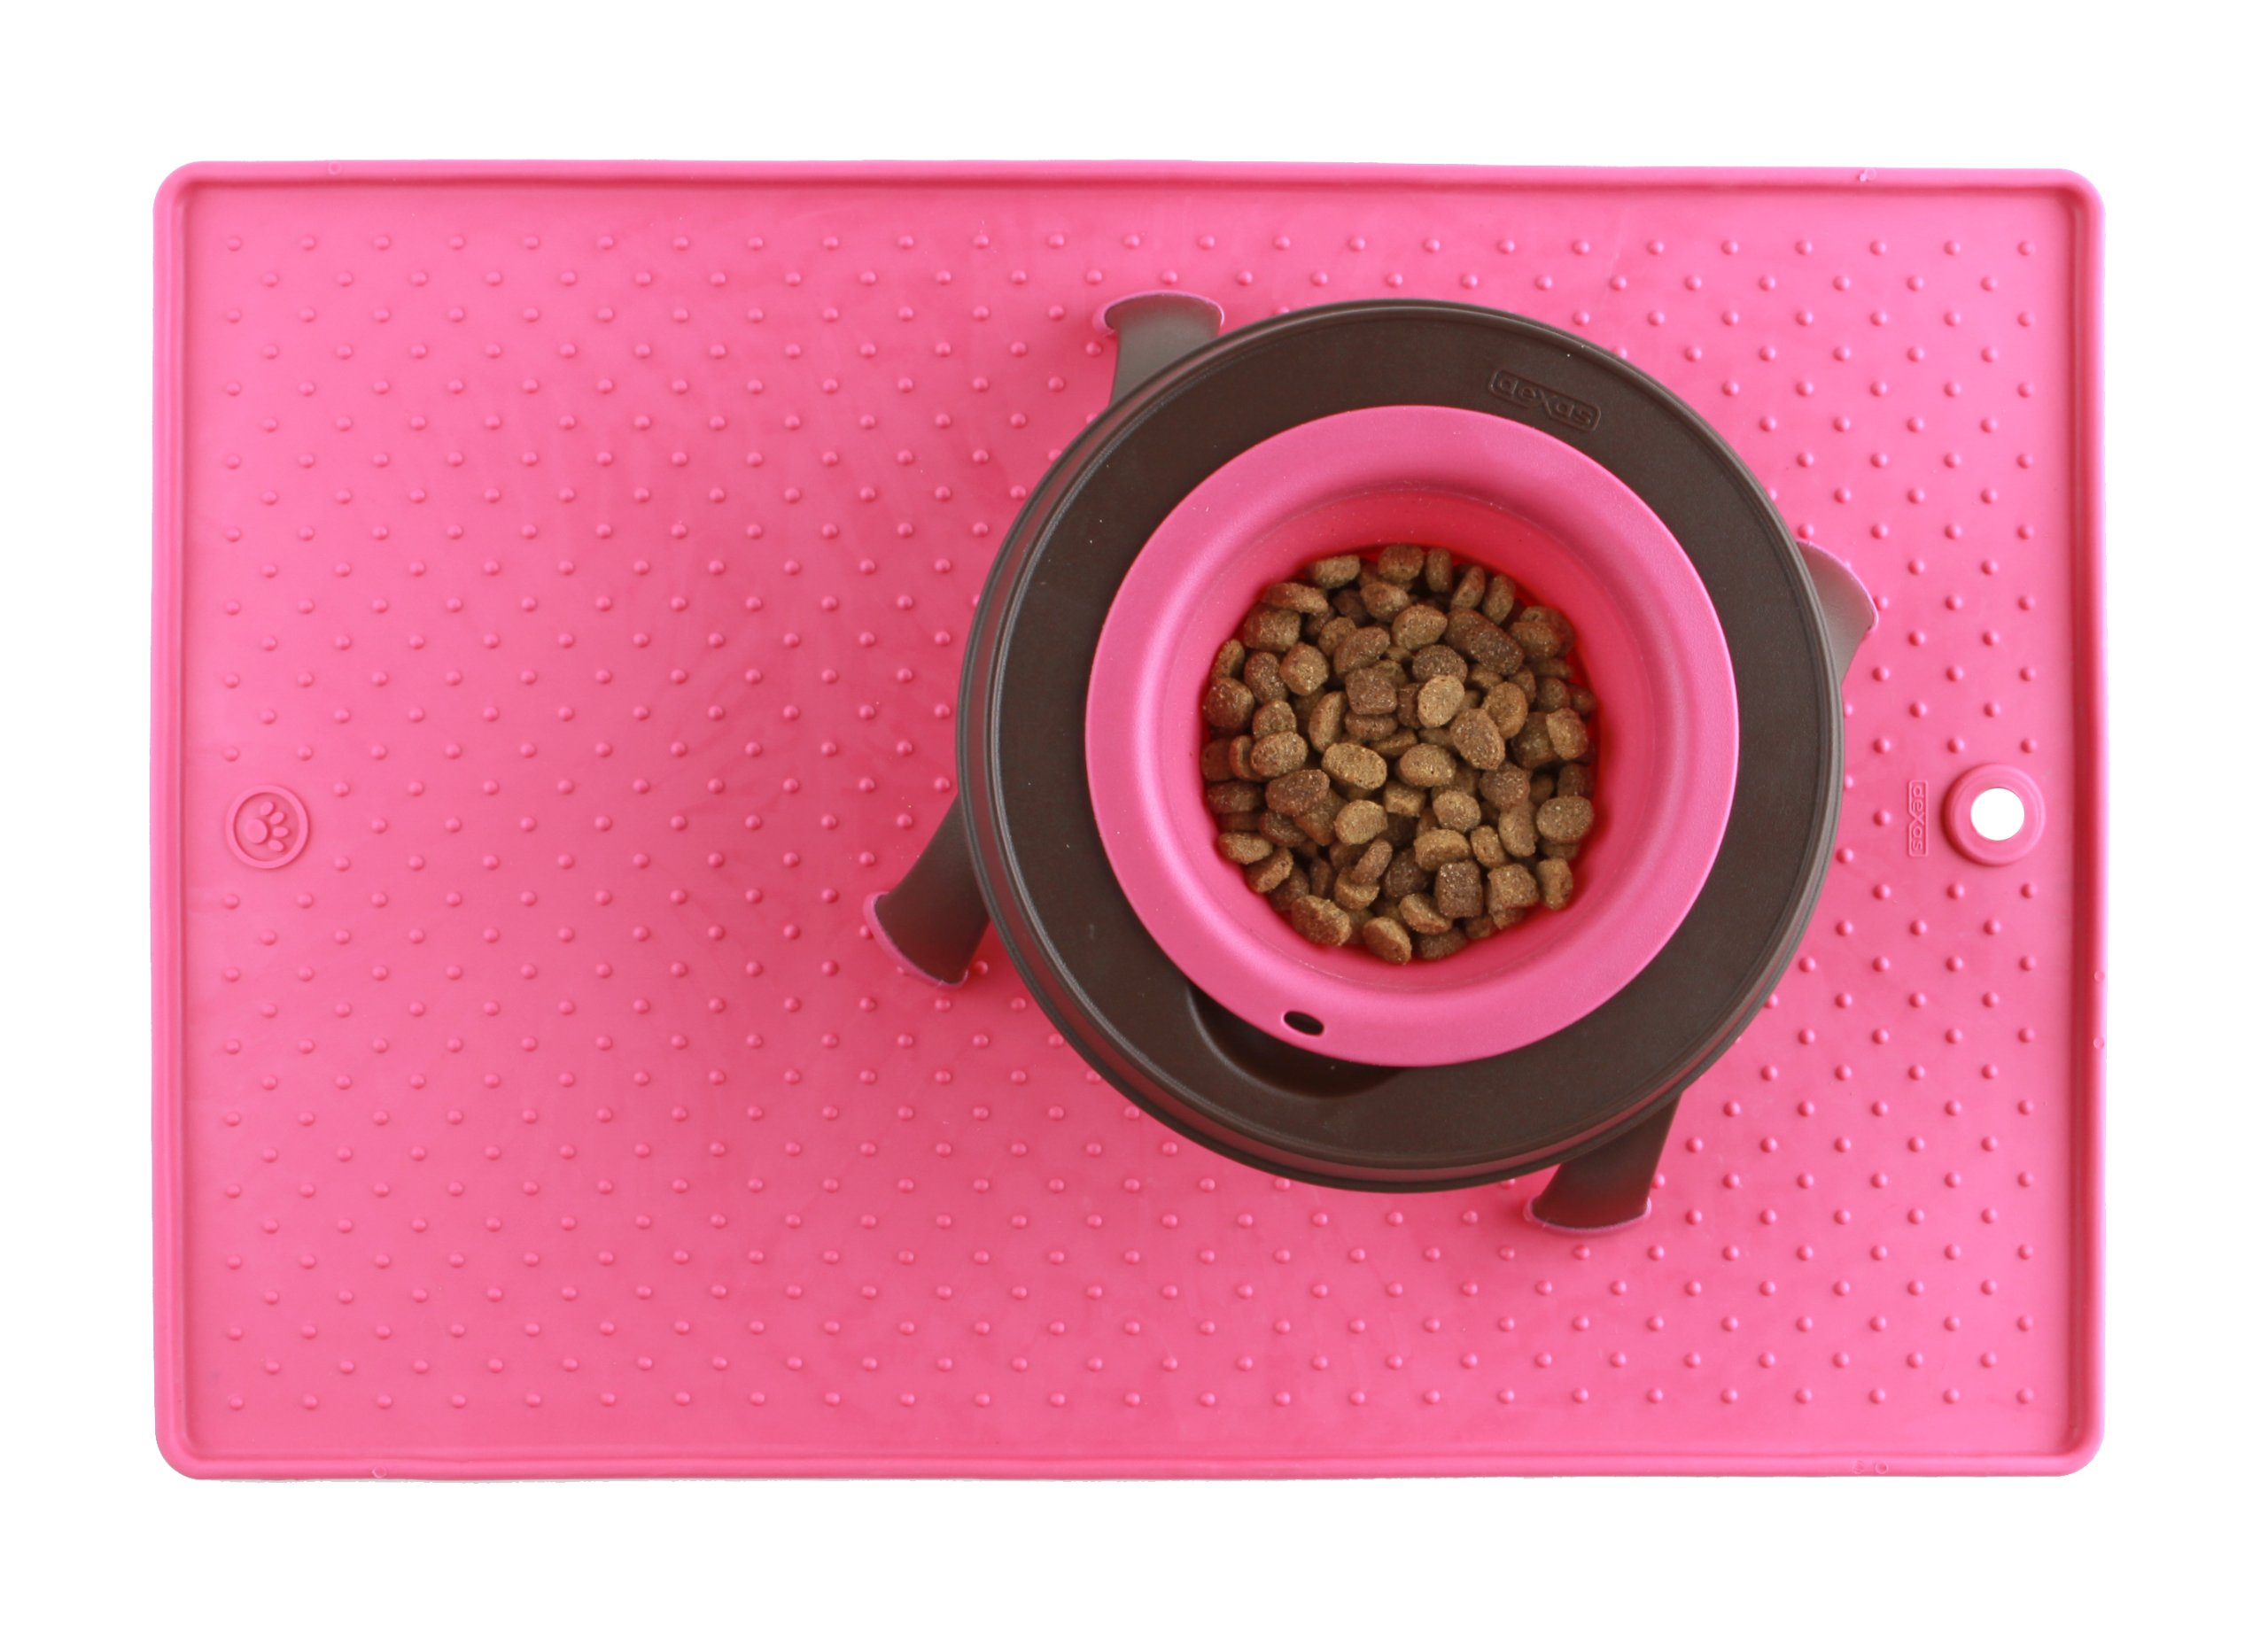 Dexas  Grippmat for Pet Bowls, 13 by 19 inches, Pink